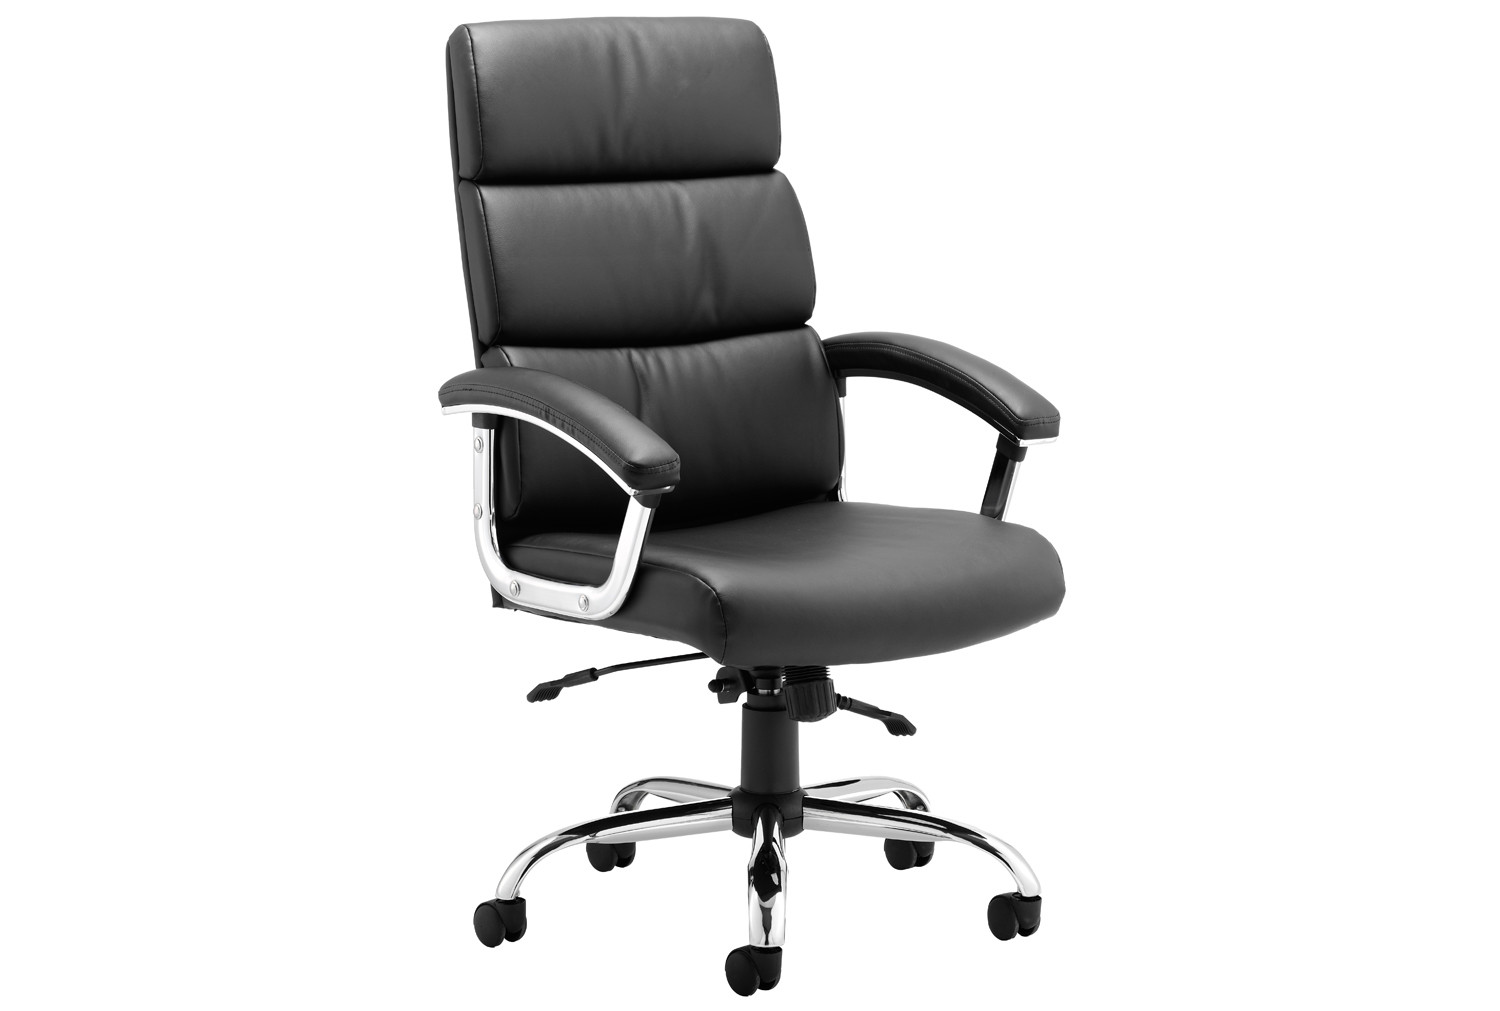 Crave High Back Black Bonded Leather Executive Chair